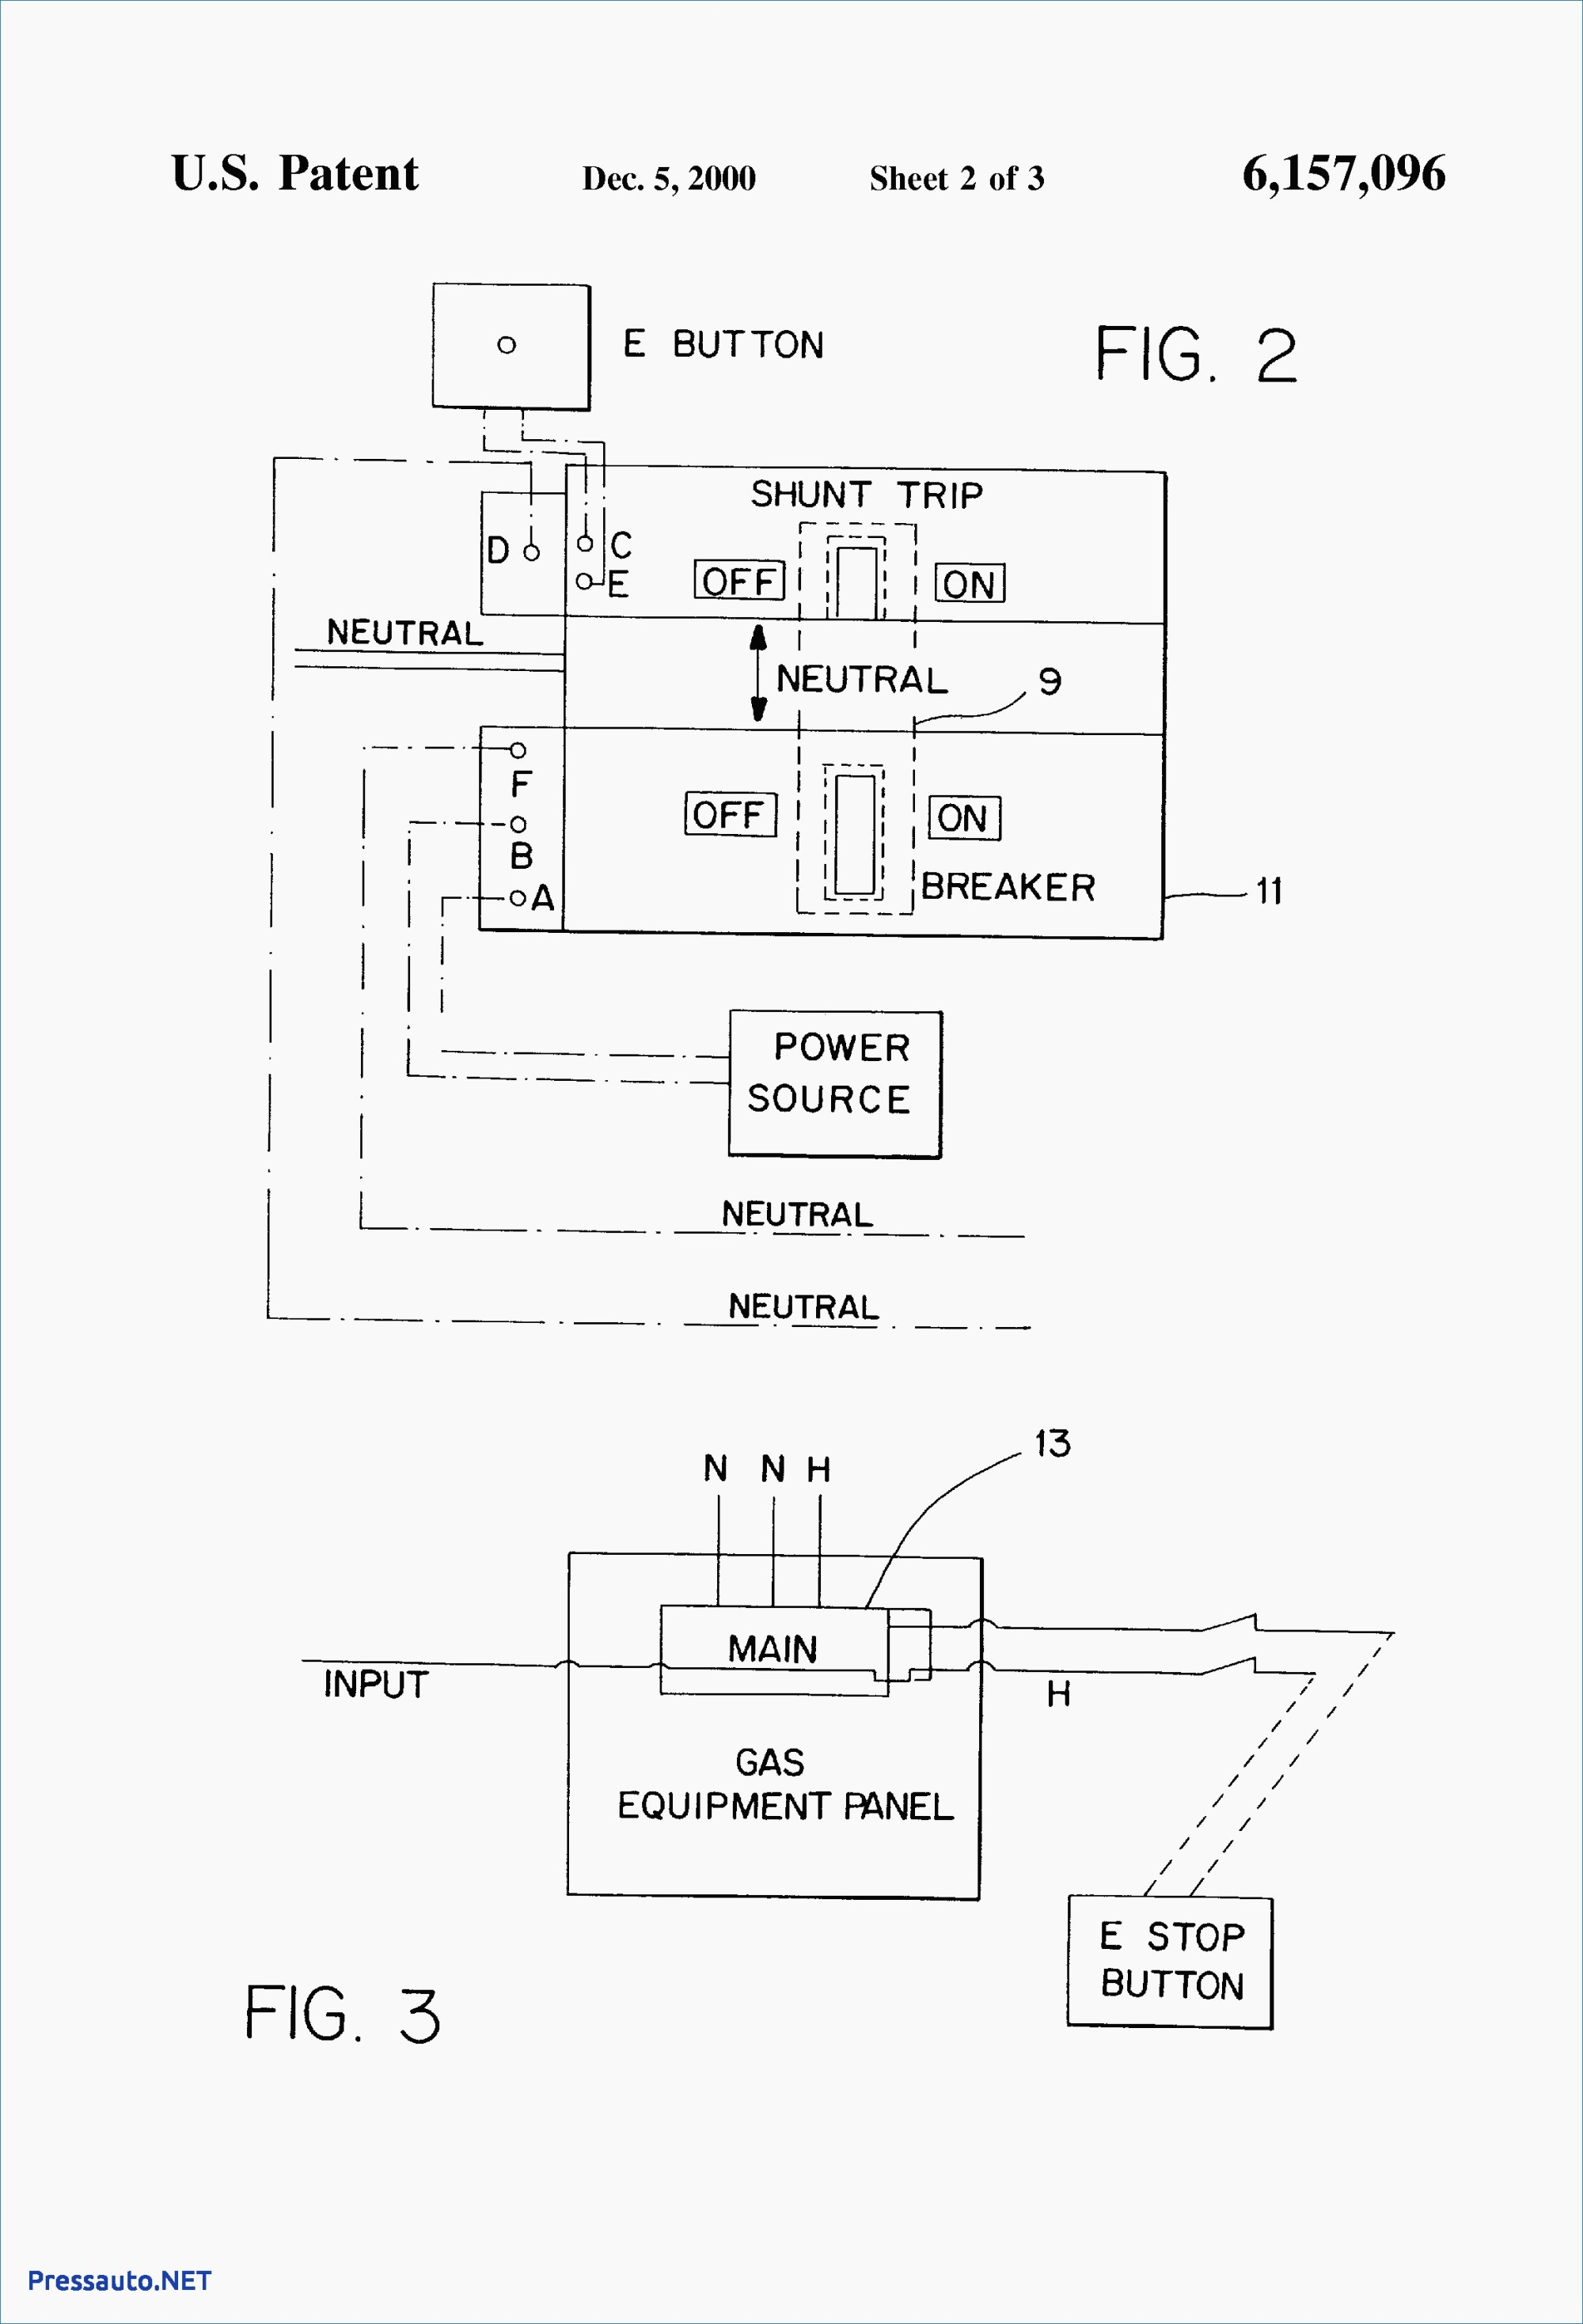 hight resolution of wire diagram 17 d wiring diagramairbag shunt wiring diagram wiring diagram ebookairbag shunt wiring diagram wiring